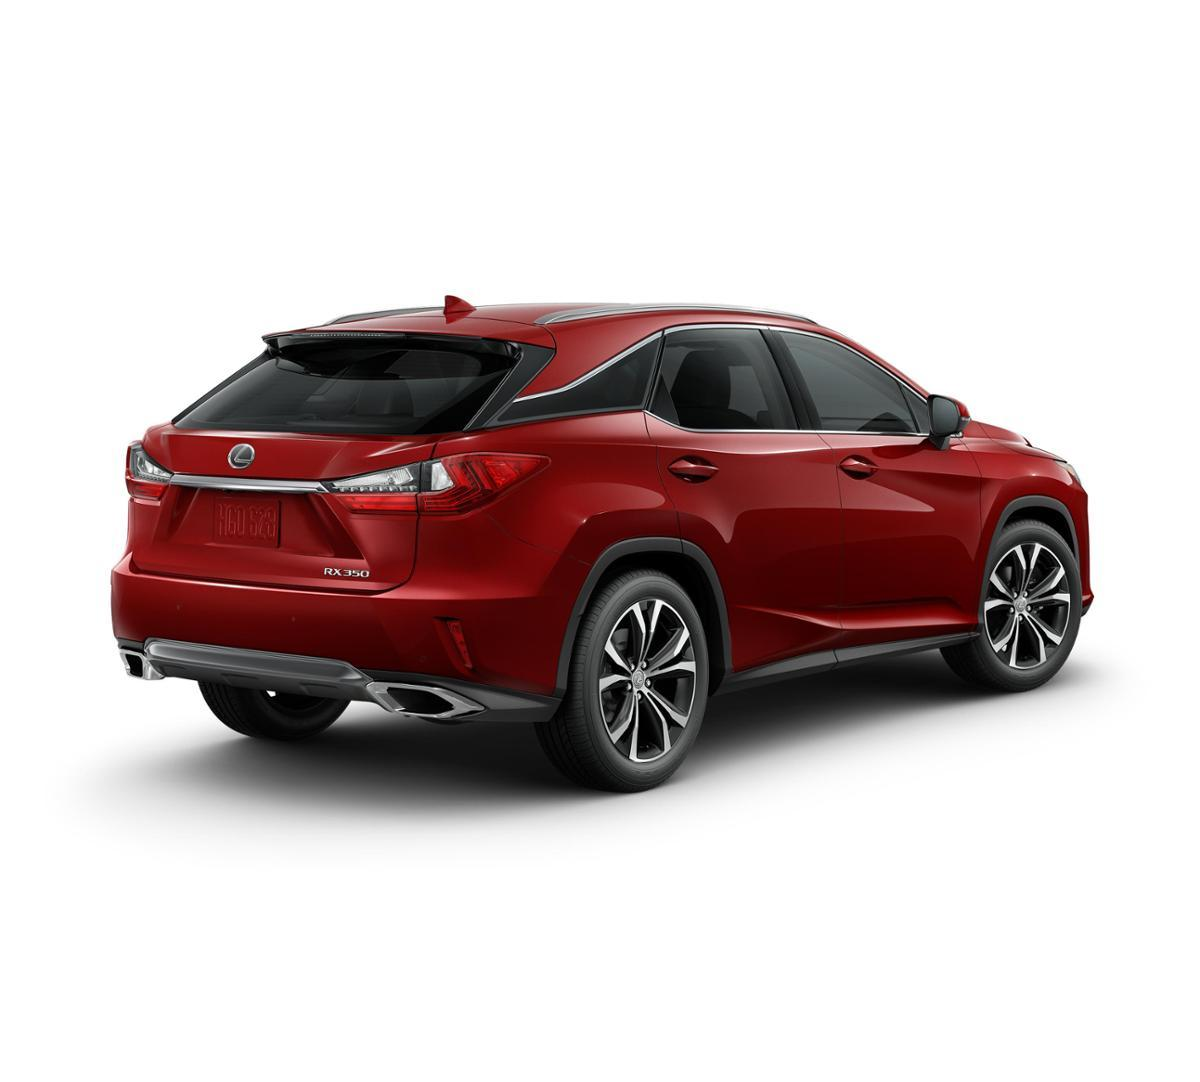 2018 lexus rx 350 for sale in duluth 2t2zzmca2jc094541 hennessy lexus of gwinnett. Black Bedroom Furniture Sets. Home Design Ideas